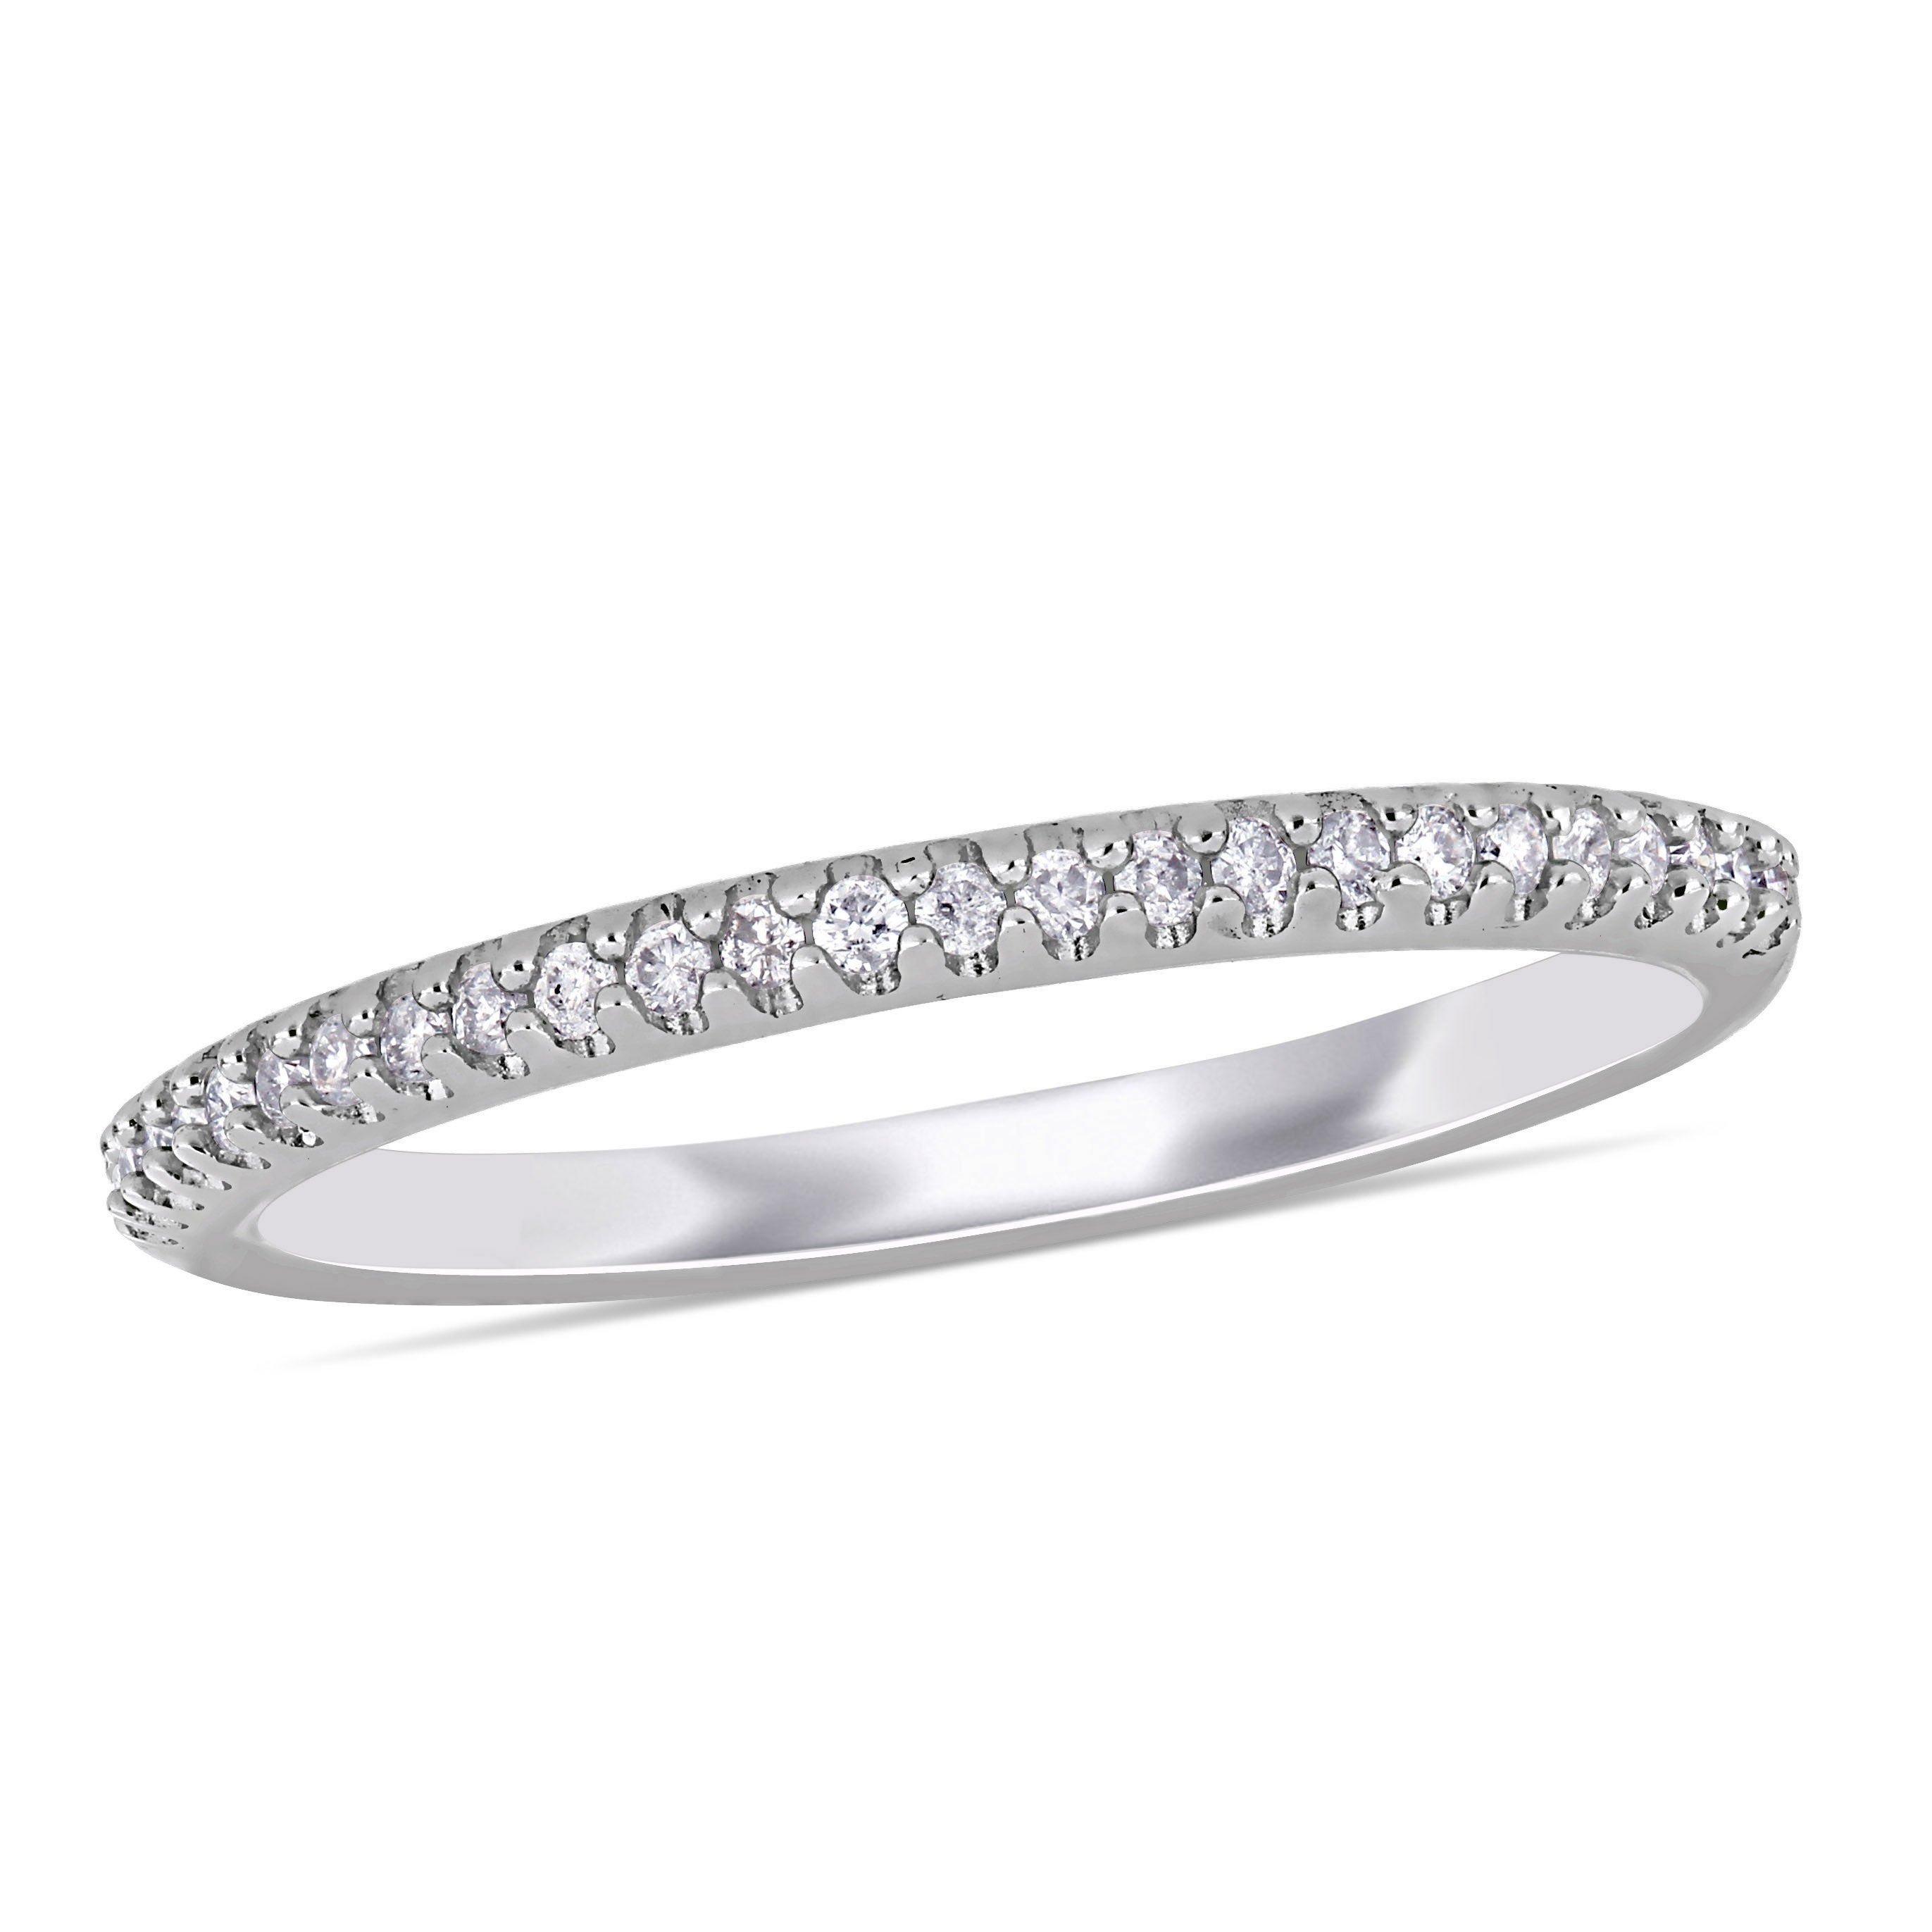 Diamond Wedding Band in Sterling Silver G-H,I2-I3 1//6 cttw, Size-6.25